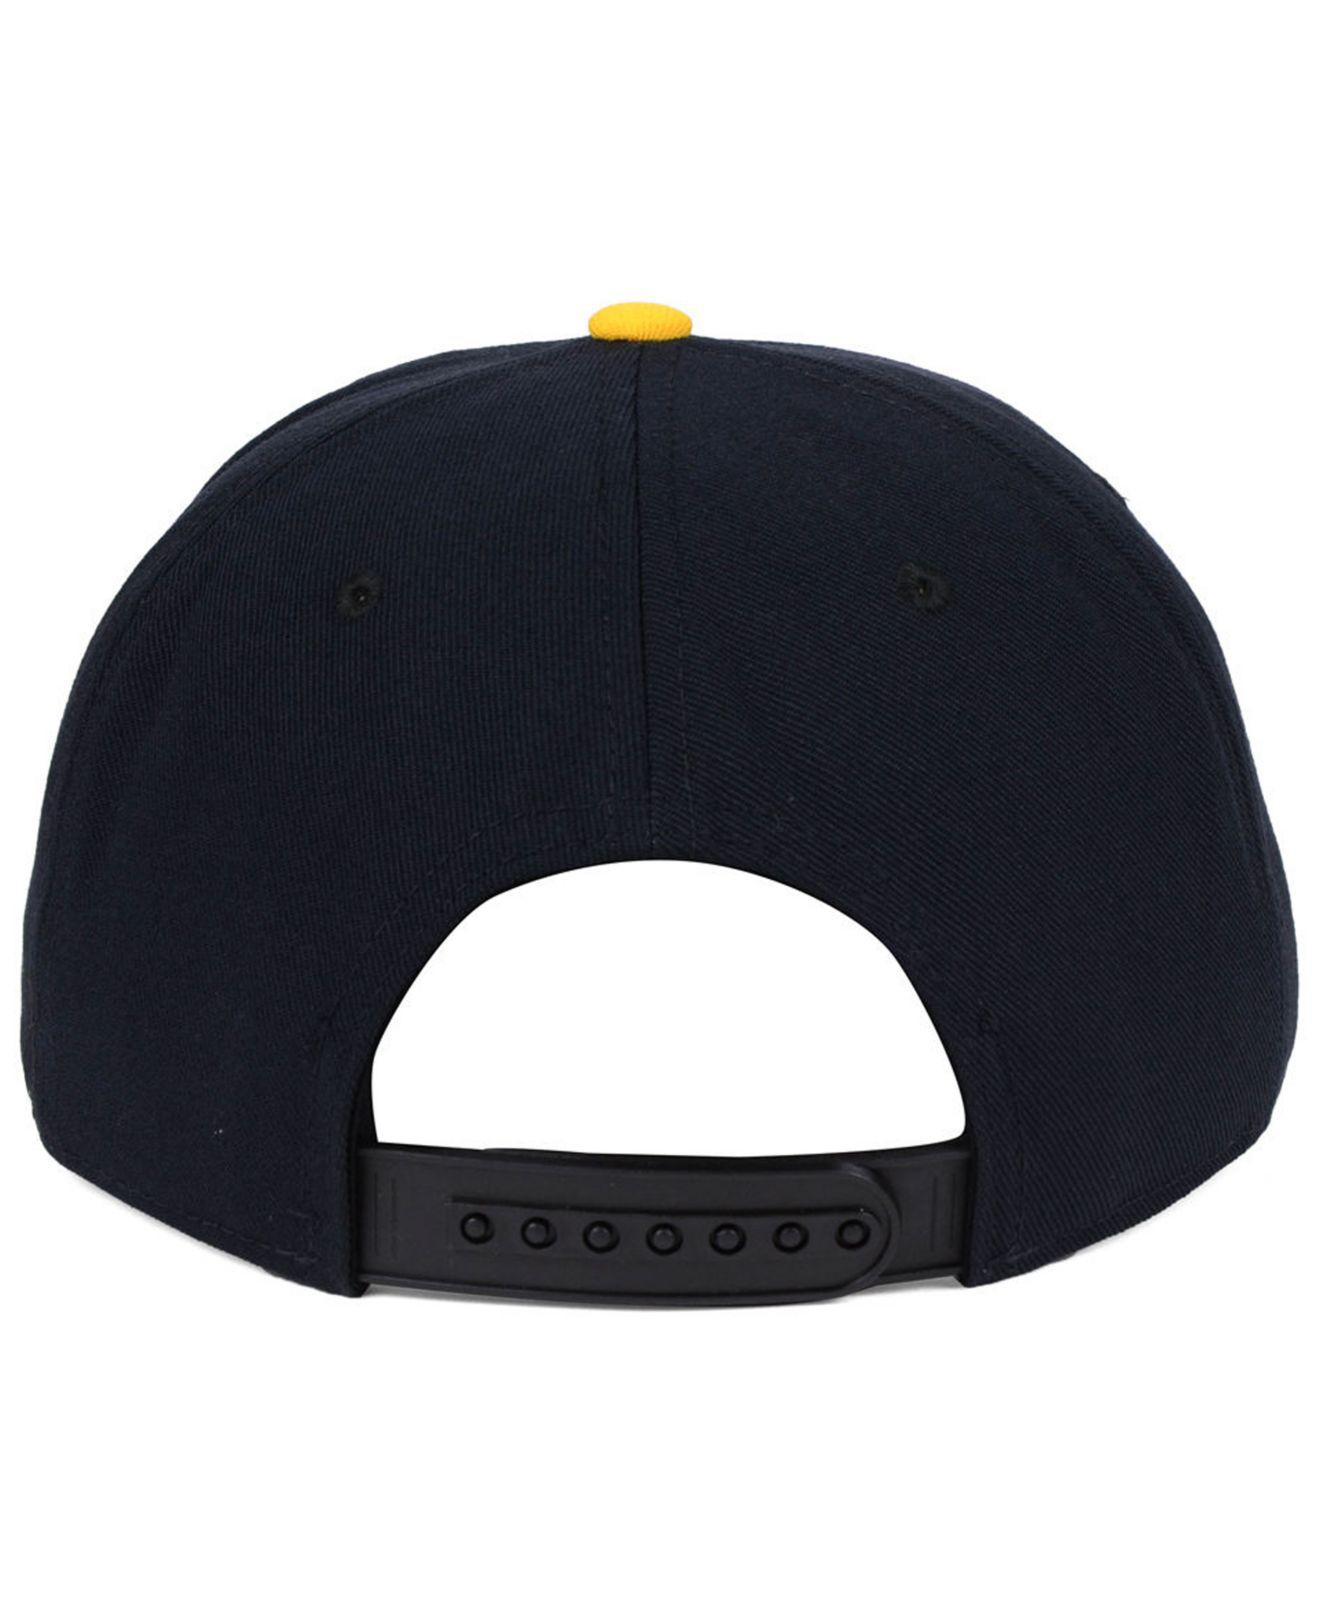 competitive price b3bc2 369be ... new style nike black pittsburgh pirates reverse new day snapback cap  for men lyst. view